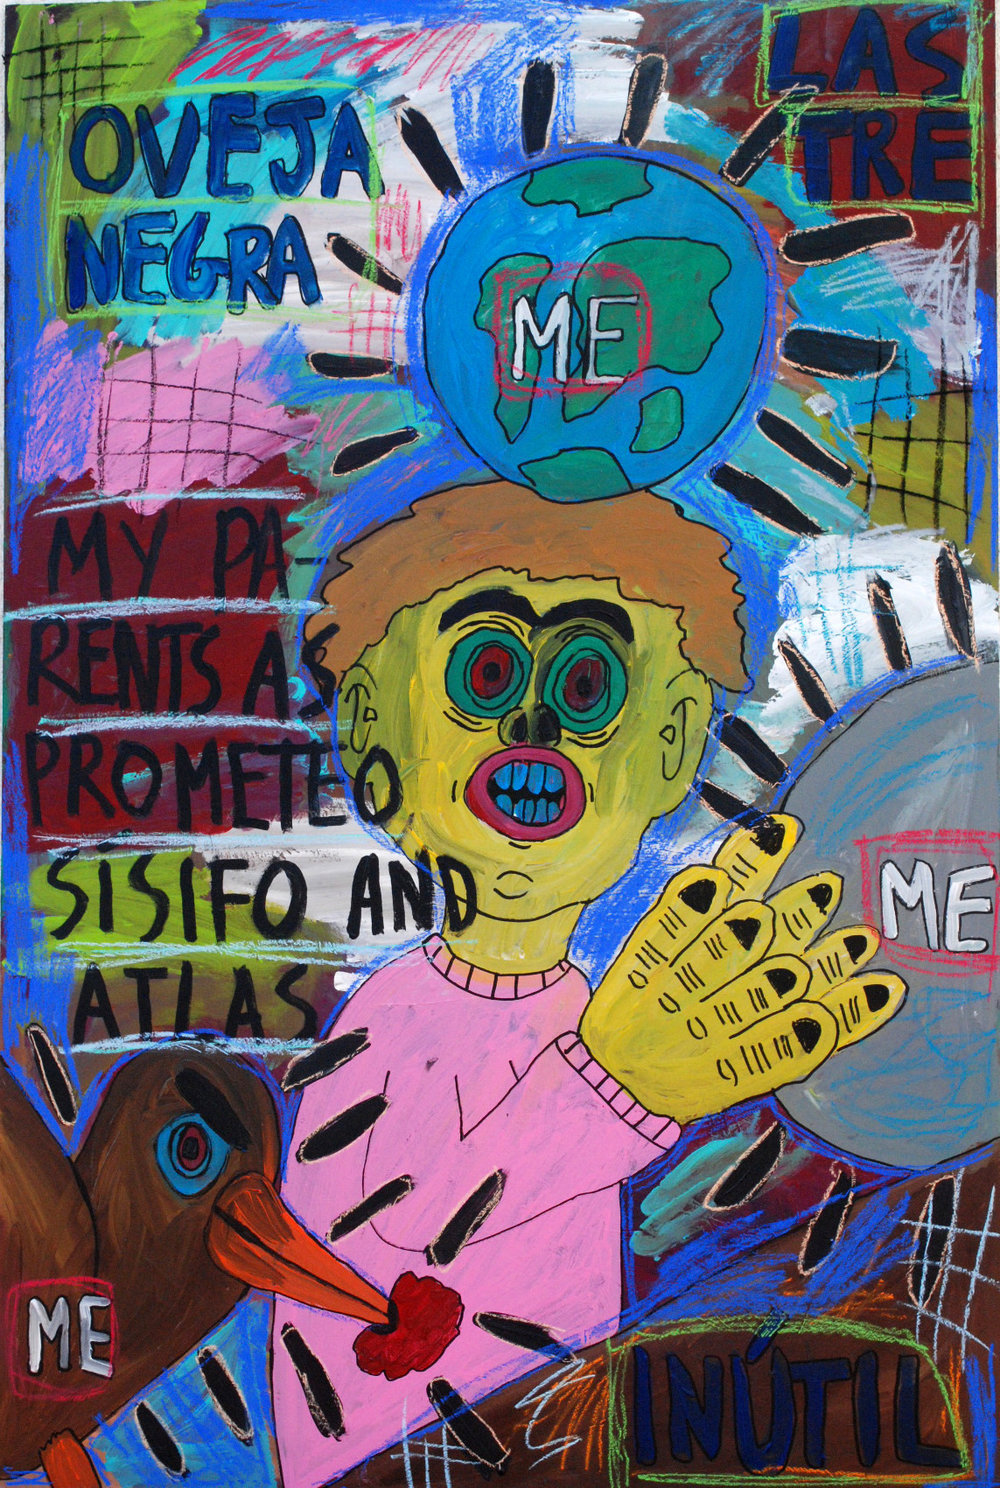 """My parents as Prometeo, Sísifo and Atlas"" , 2012   Acrylic paint and pastel on wood, 90 x 130 cm"